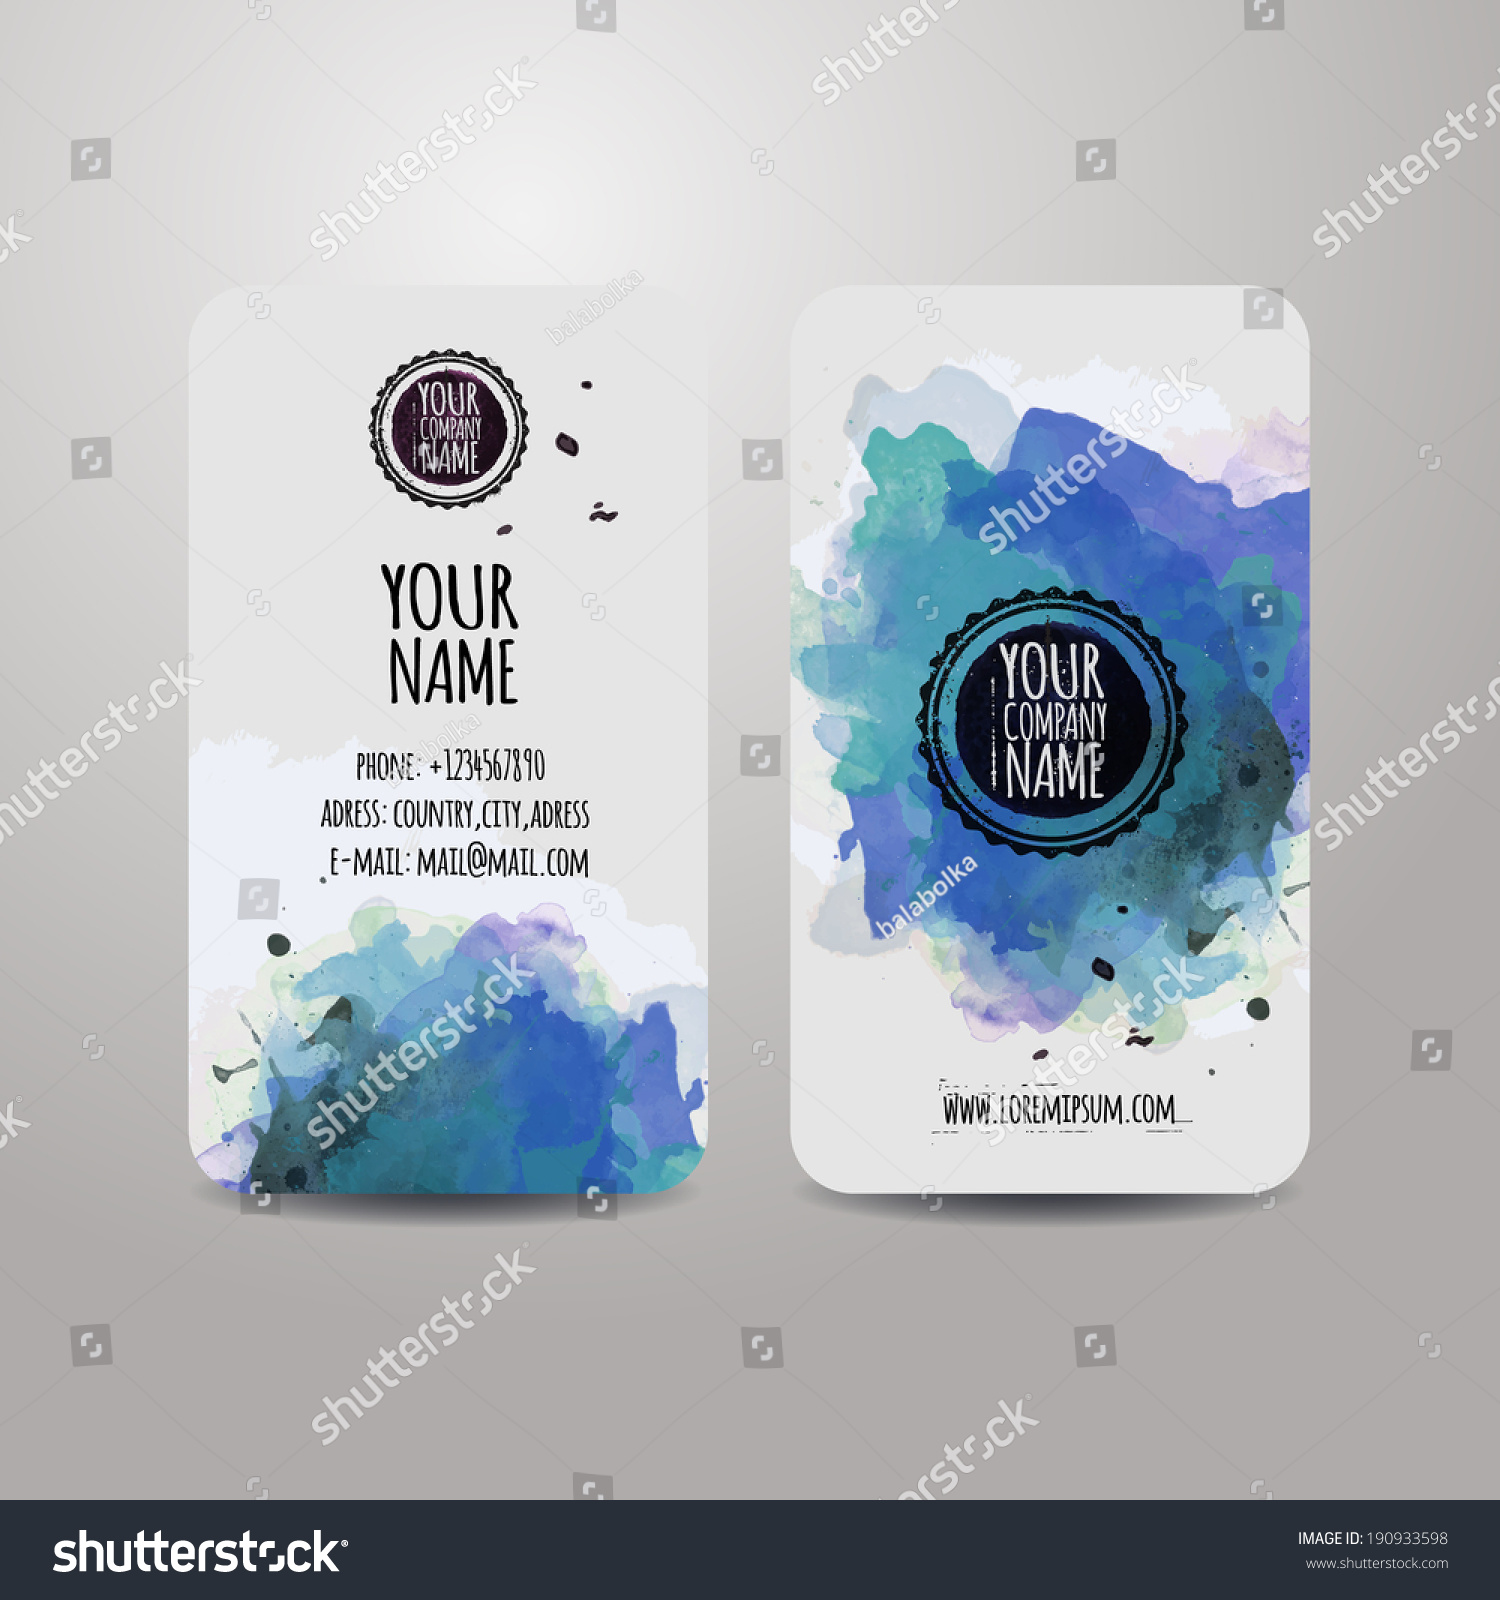 Vector template business cards with watercolor paint for Watercolor painting templates free